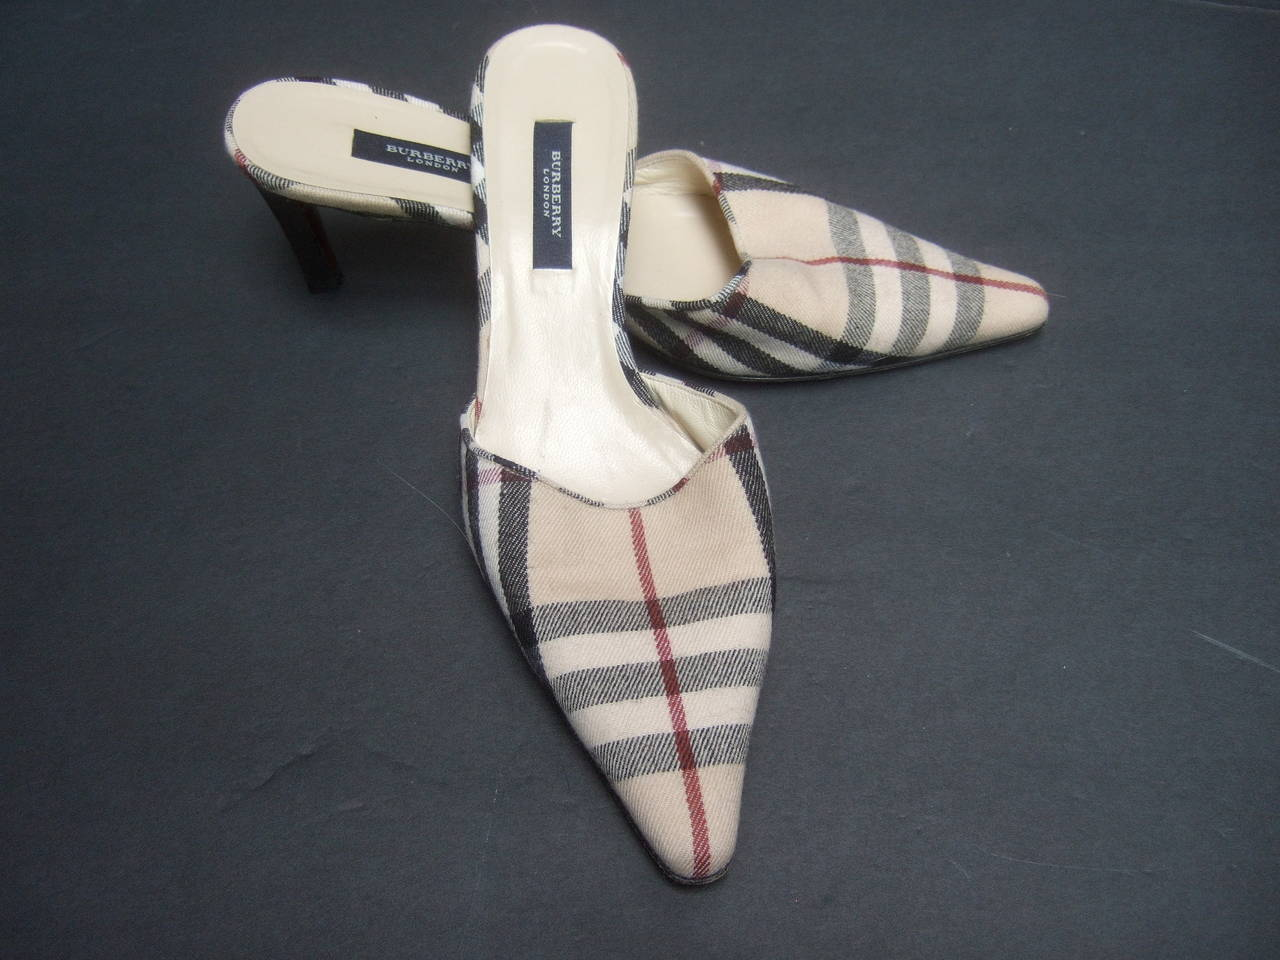 Burberry London Classic Nova Plaid Wool Mules Made in Italy Size 37.5 In Excellent Condition For Sale In Santa Barbara, CA